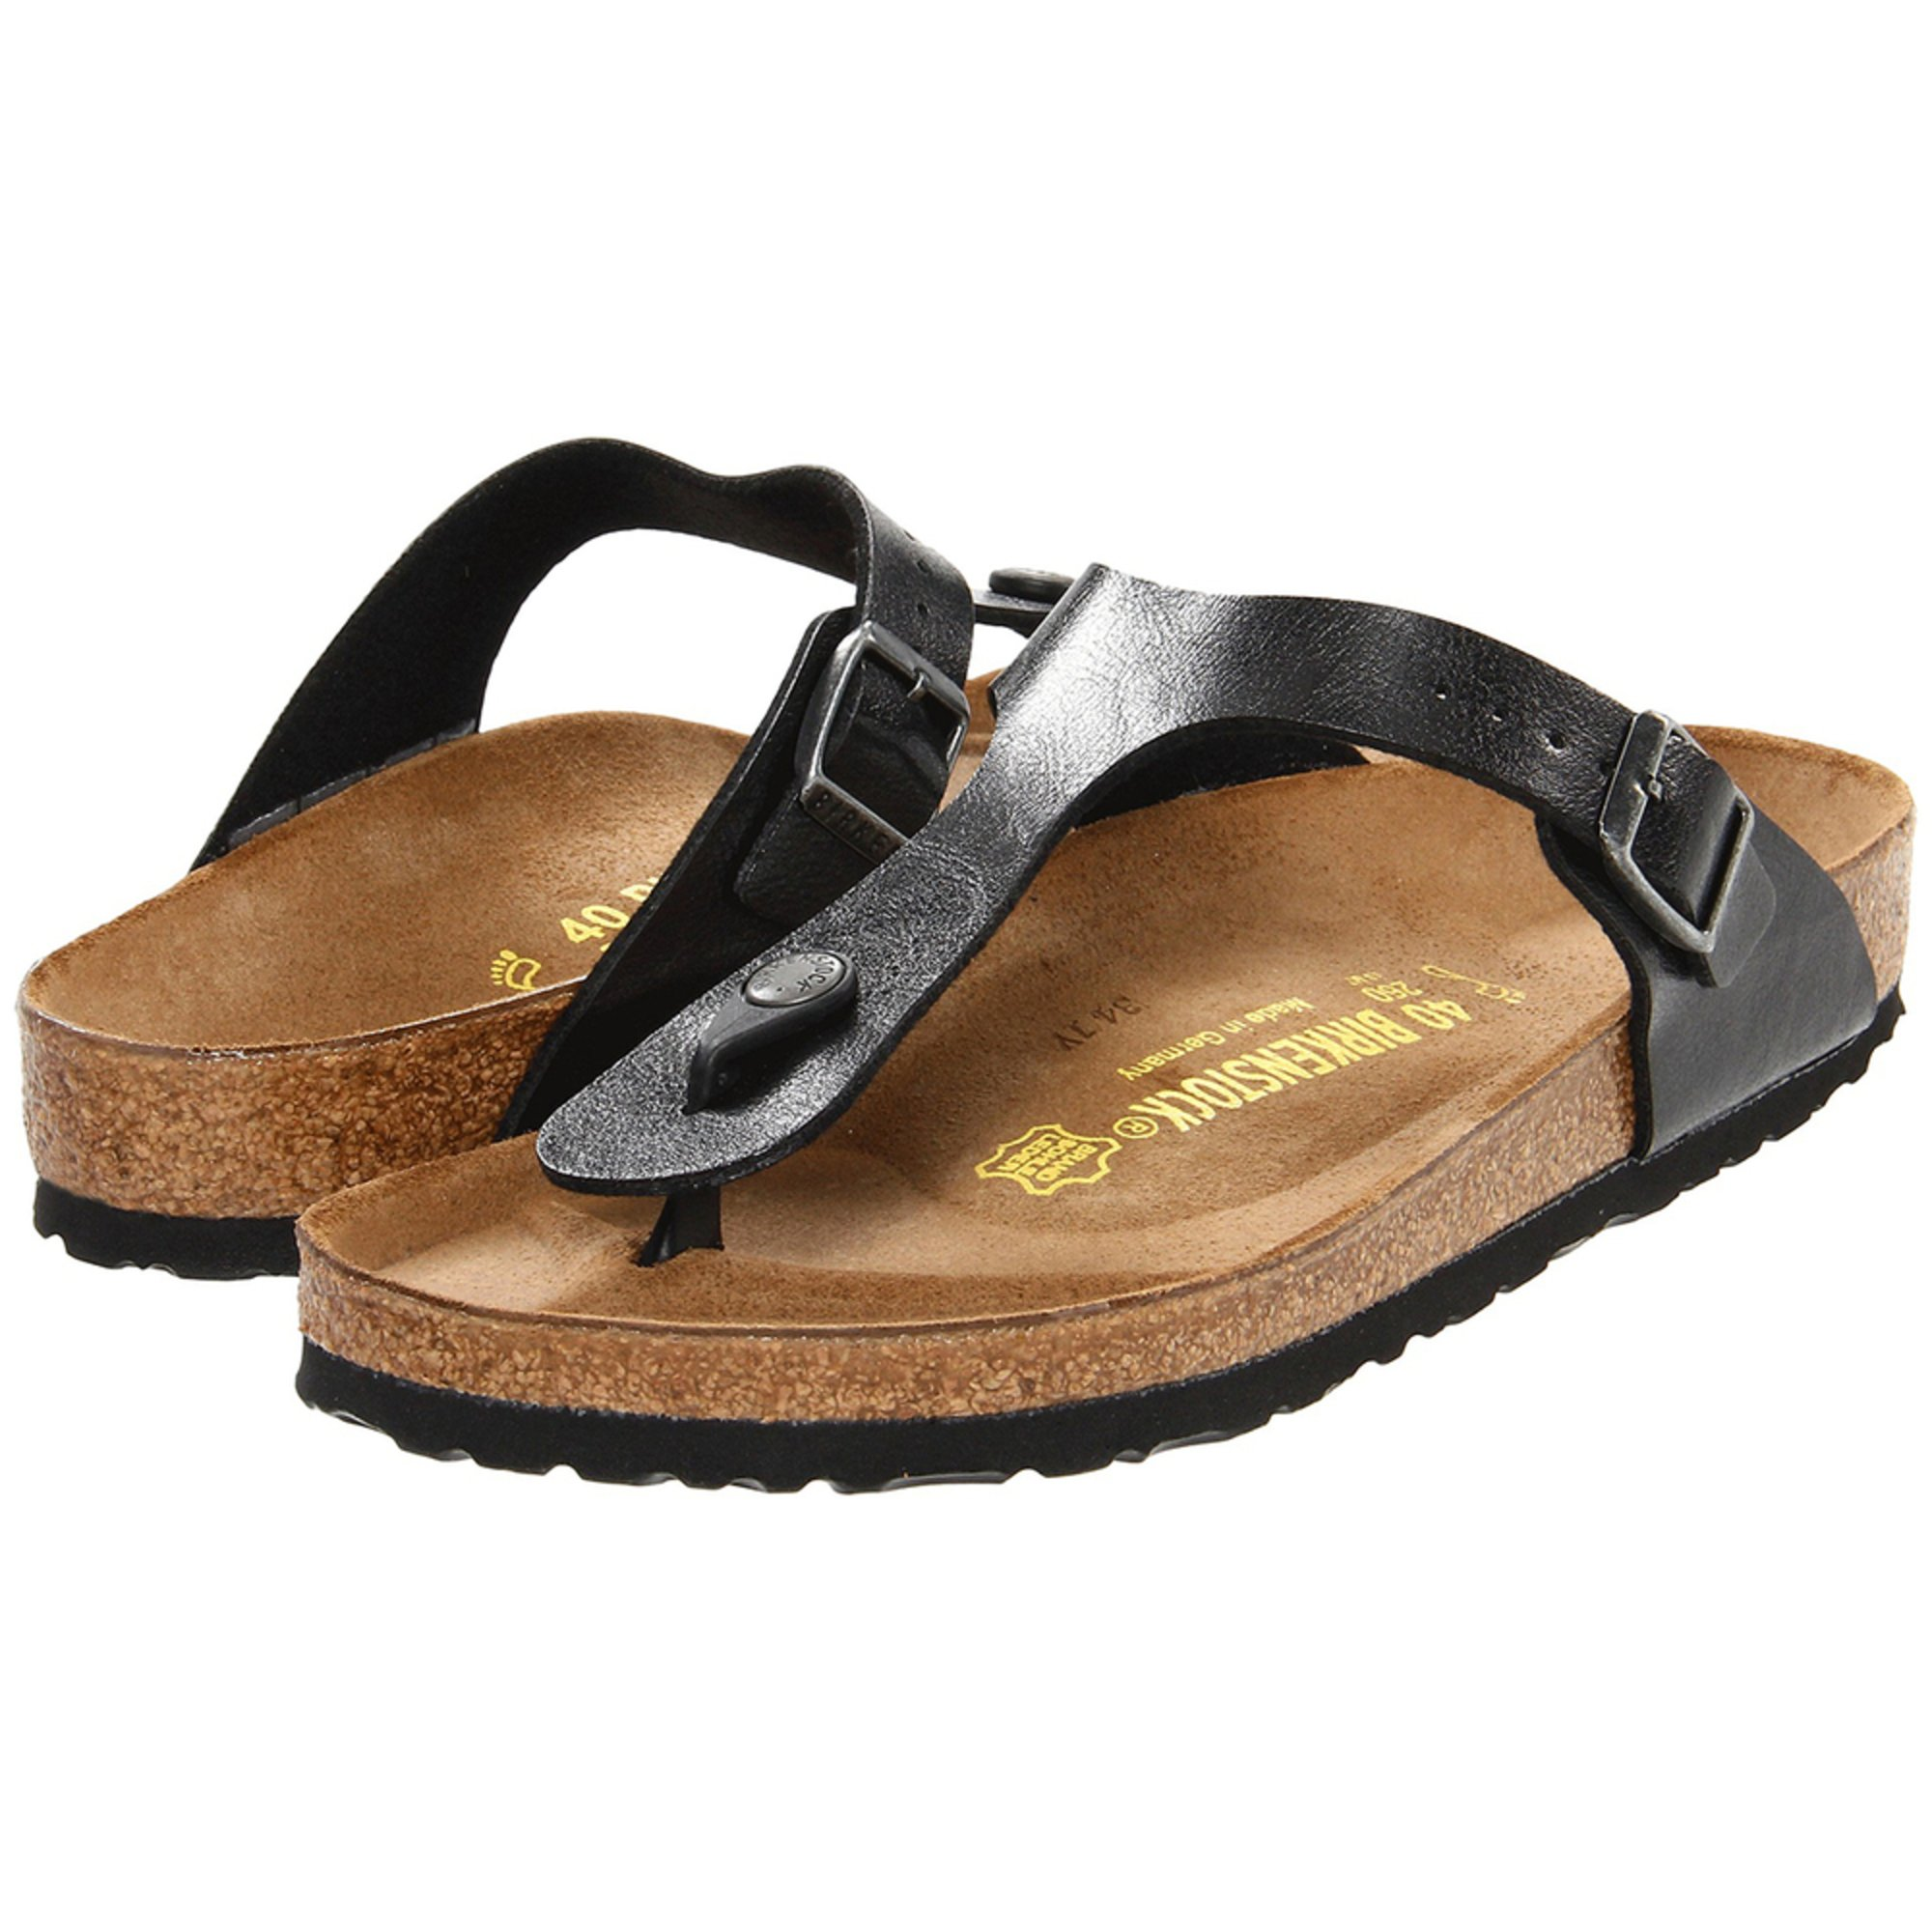 New Women And Kids Footwear Discounter  Birkenstock Shoes Sandals, Discounted  Birkenstock Clearance, Discount Shoes At The Lowest Prices In The USA And Canada Alpro Arizona Birkenstocks Sandals, Super Birki Clogs, Tatami,